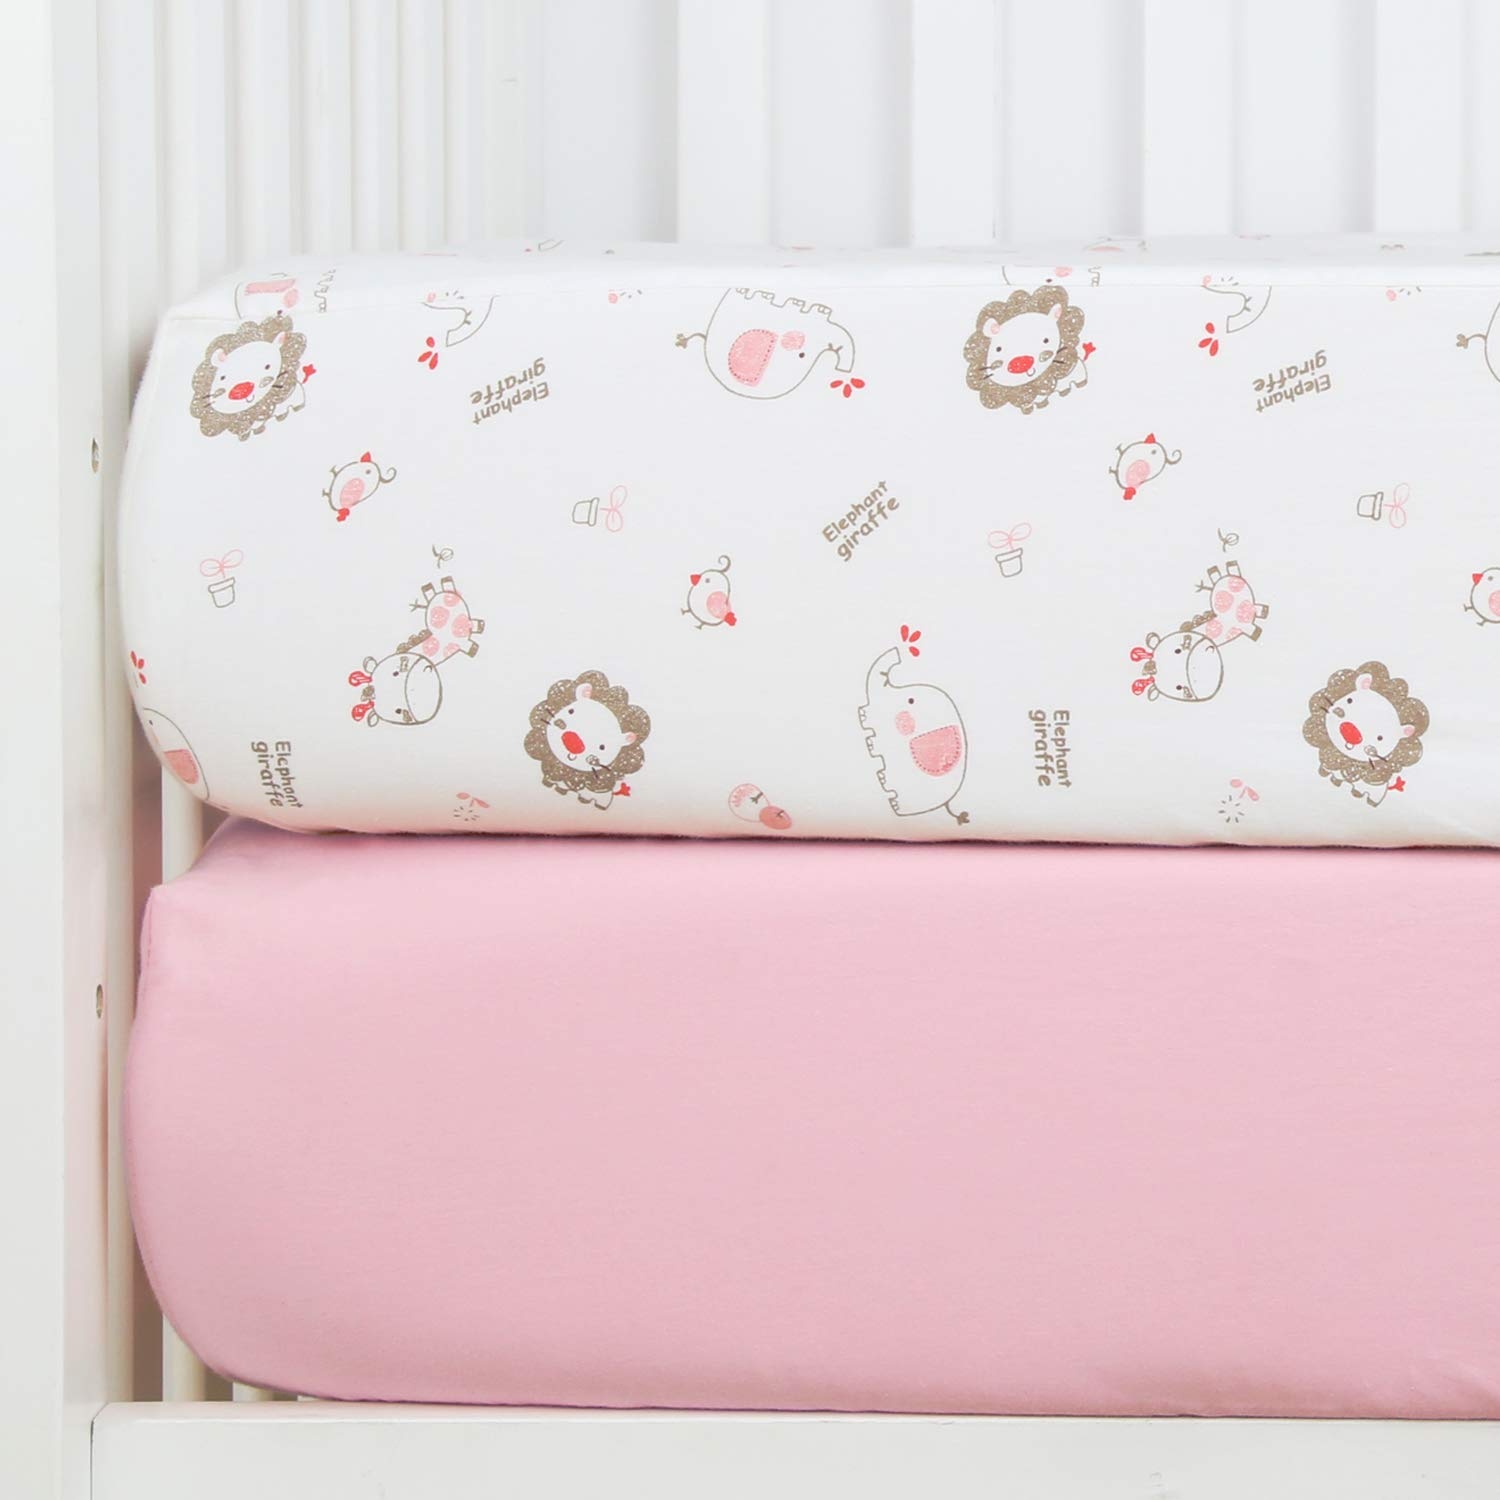 """TILLYOU Crib Sheet Elephant Giraffe Element, 100% Egyptian Cotton Toddler Sheet Set for Baby Girls and Boys, Soft Breathable Cozy Baby Sheets, 28""""x52"""" - Lt Pink & Jungle Buddies"""